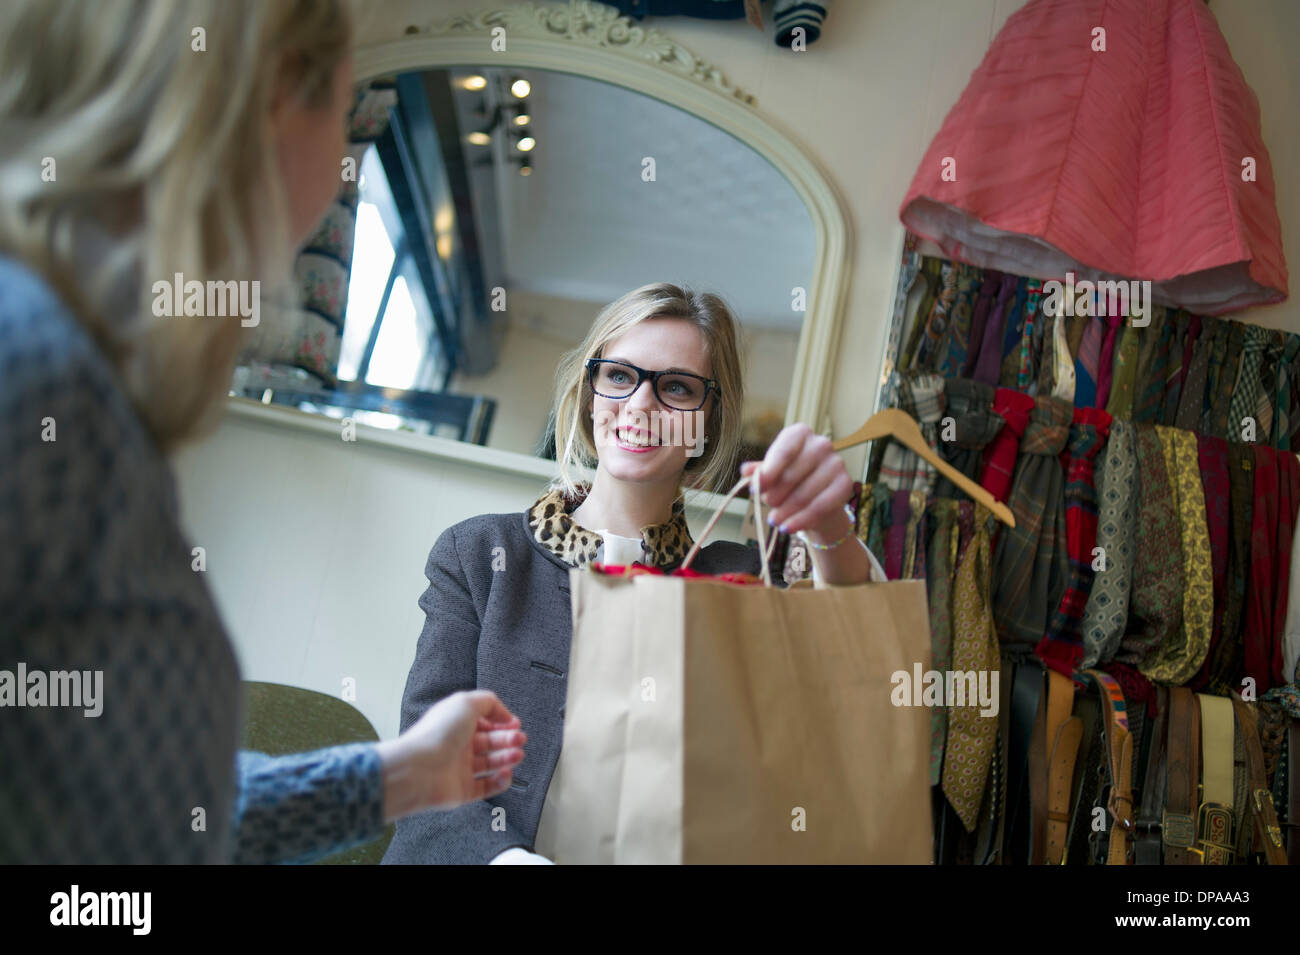 Sales assistant handing shopping bag to lady - Stock Image